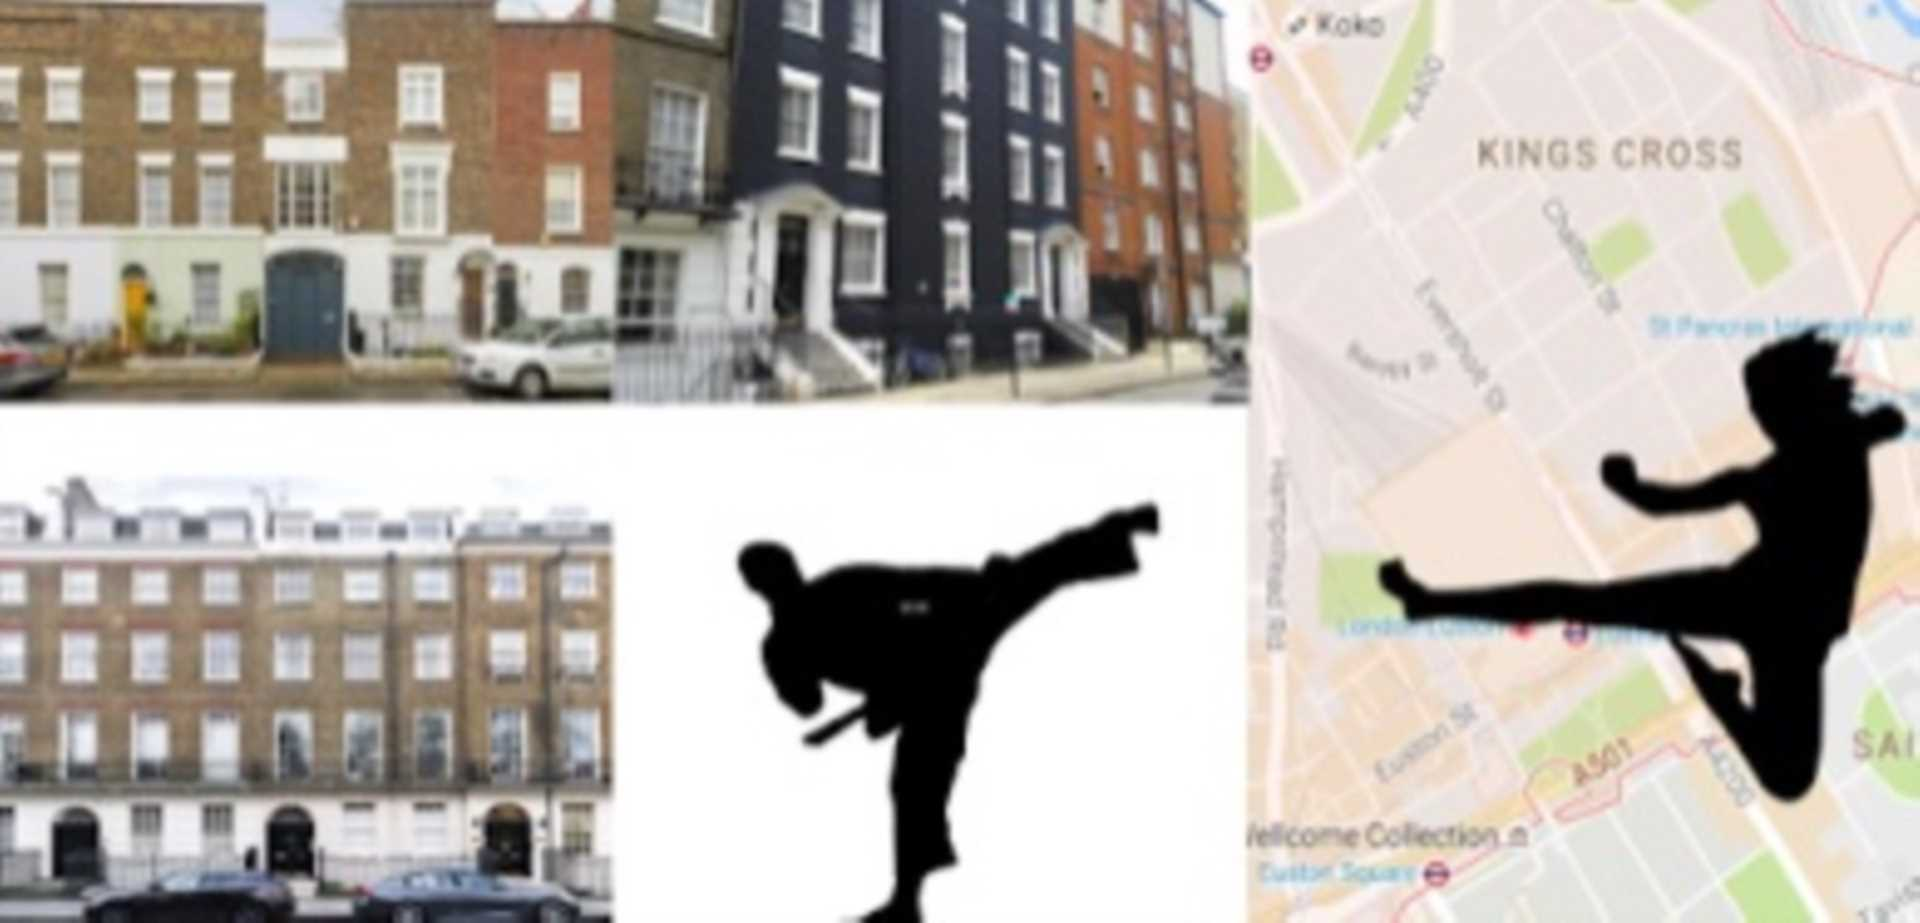 Continuing our NW1 research with Marylebone competing against King`s Cross! - How does the investment outlook compare between these two influential areas, or in other words who kicks whose investment butt?!